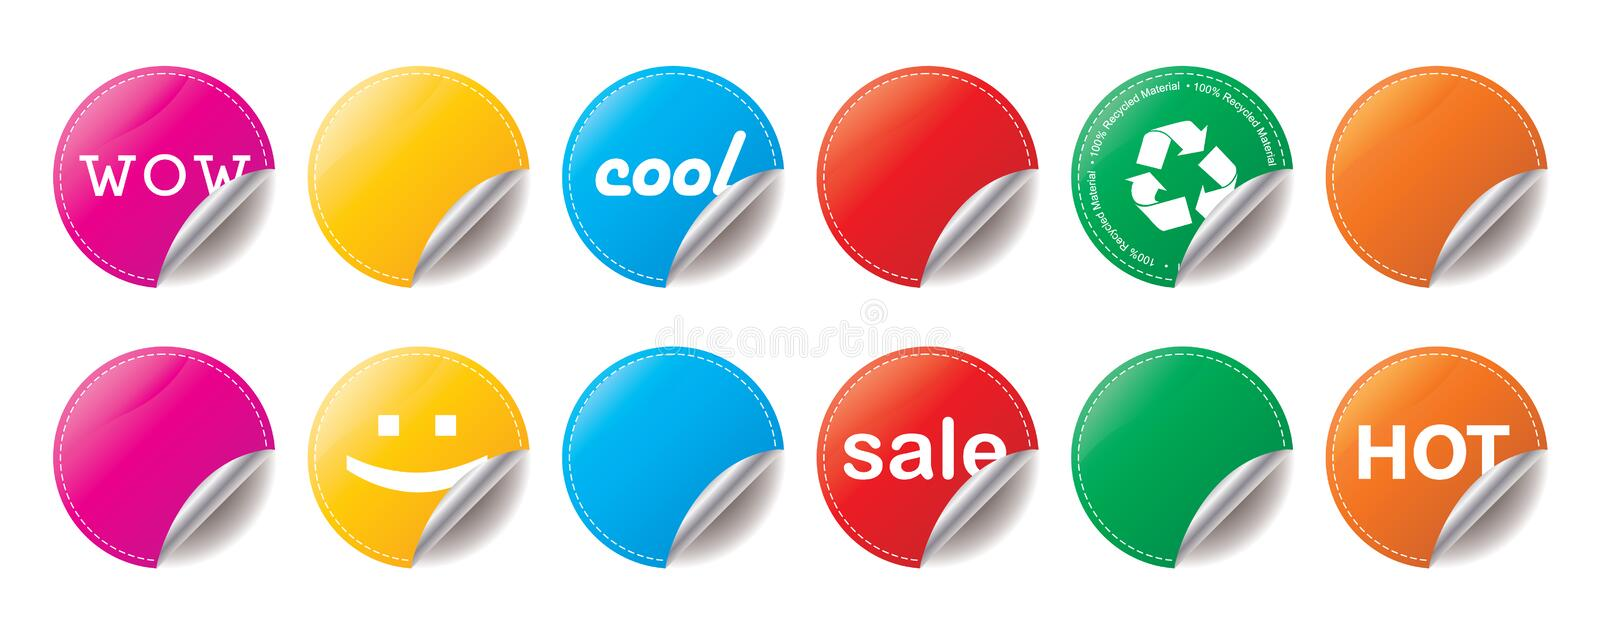 Download Shiny Stickers stock vector. Image of isolated, icon - 12716545